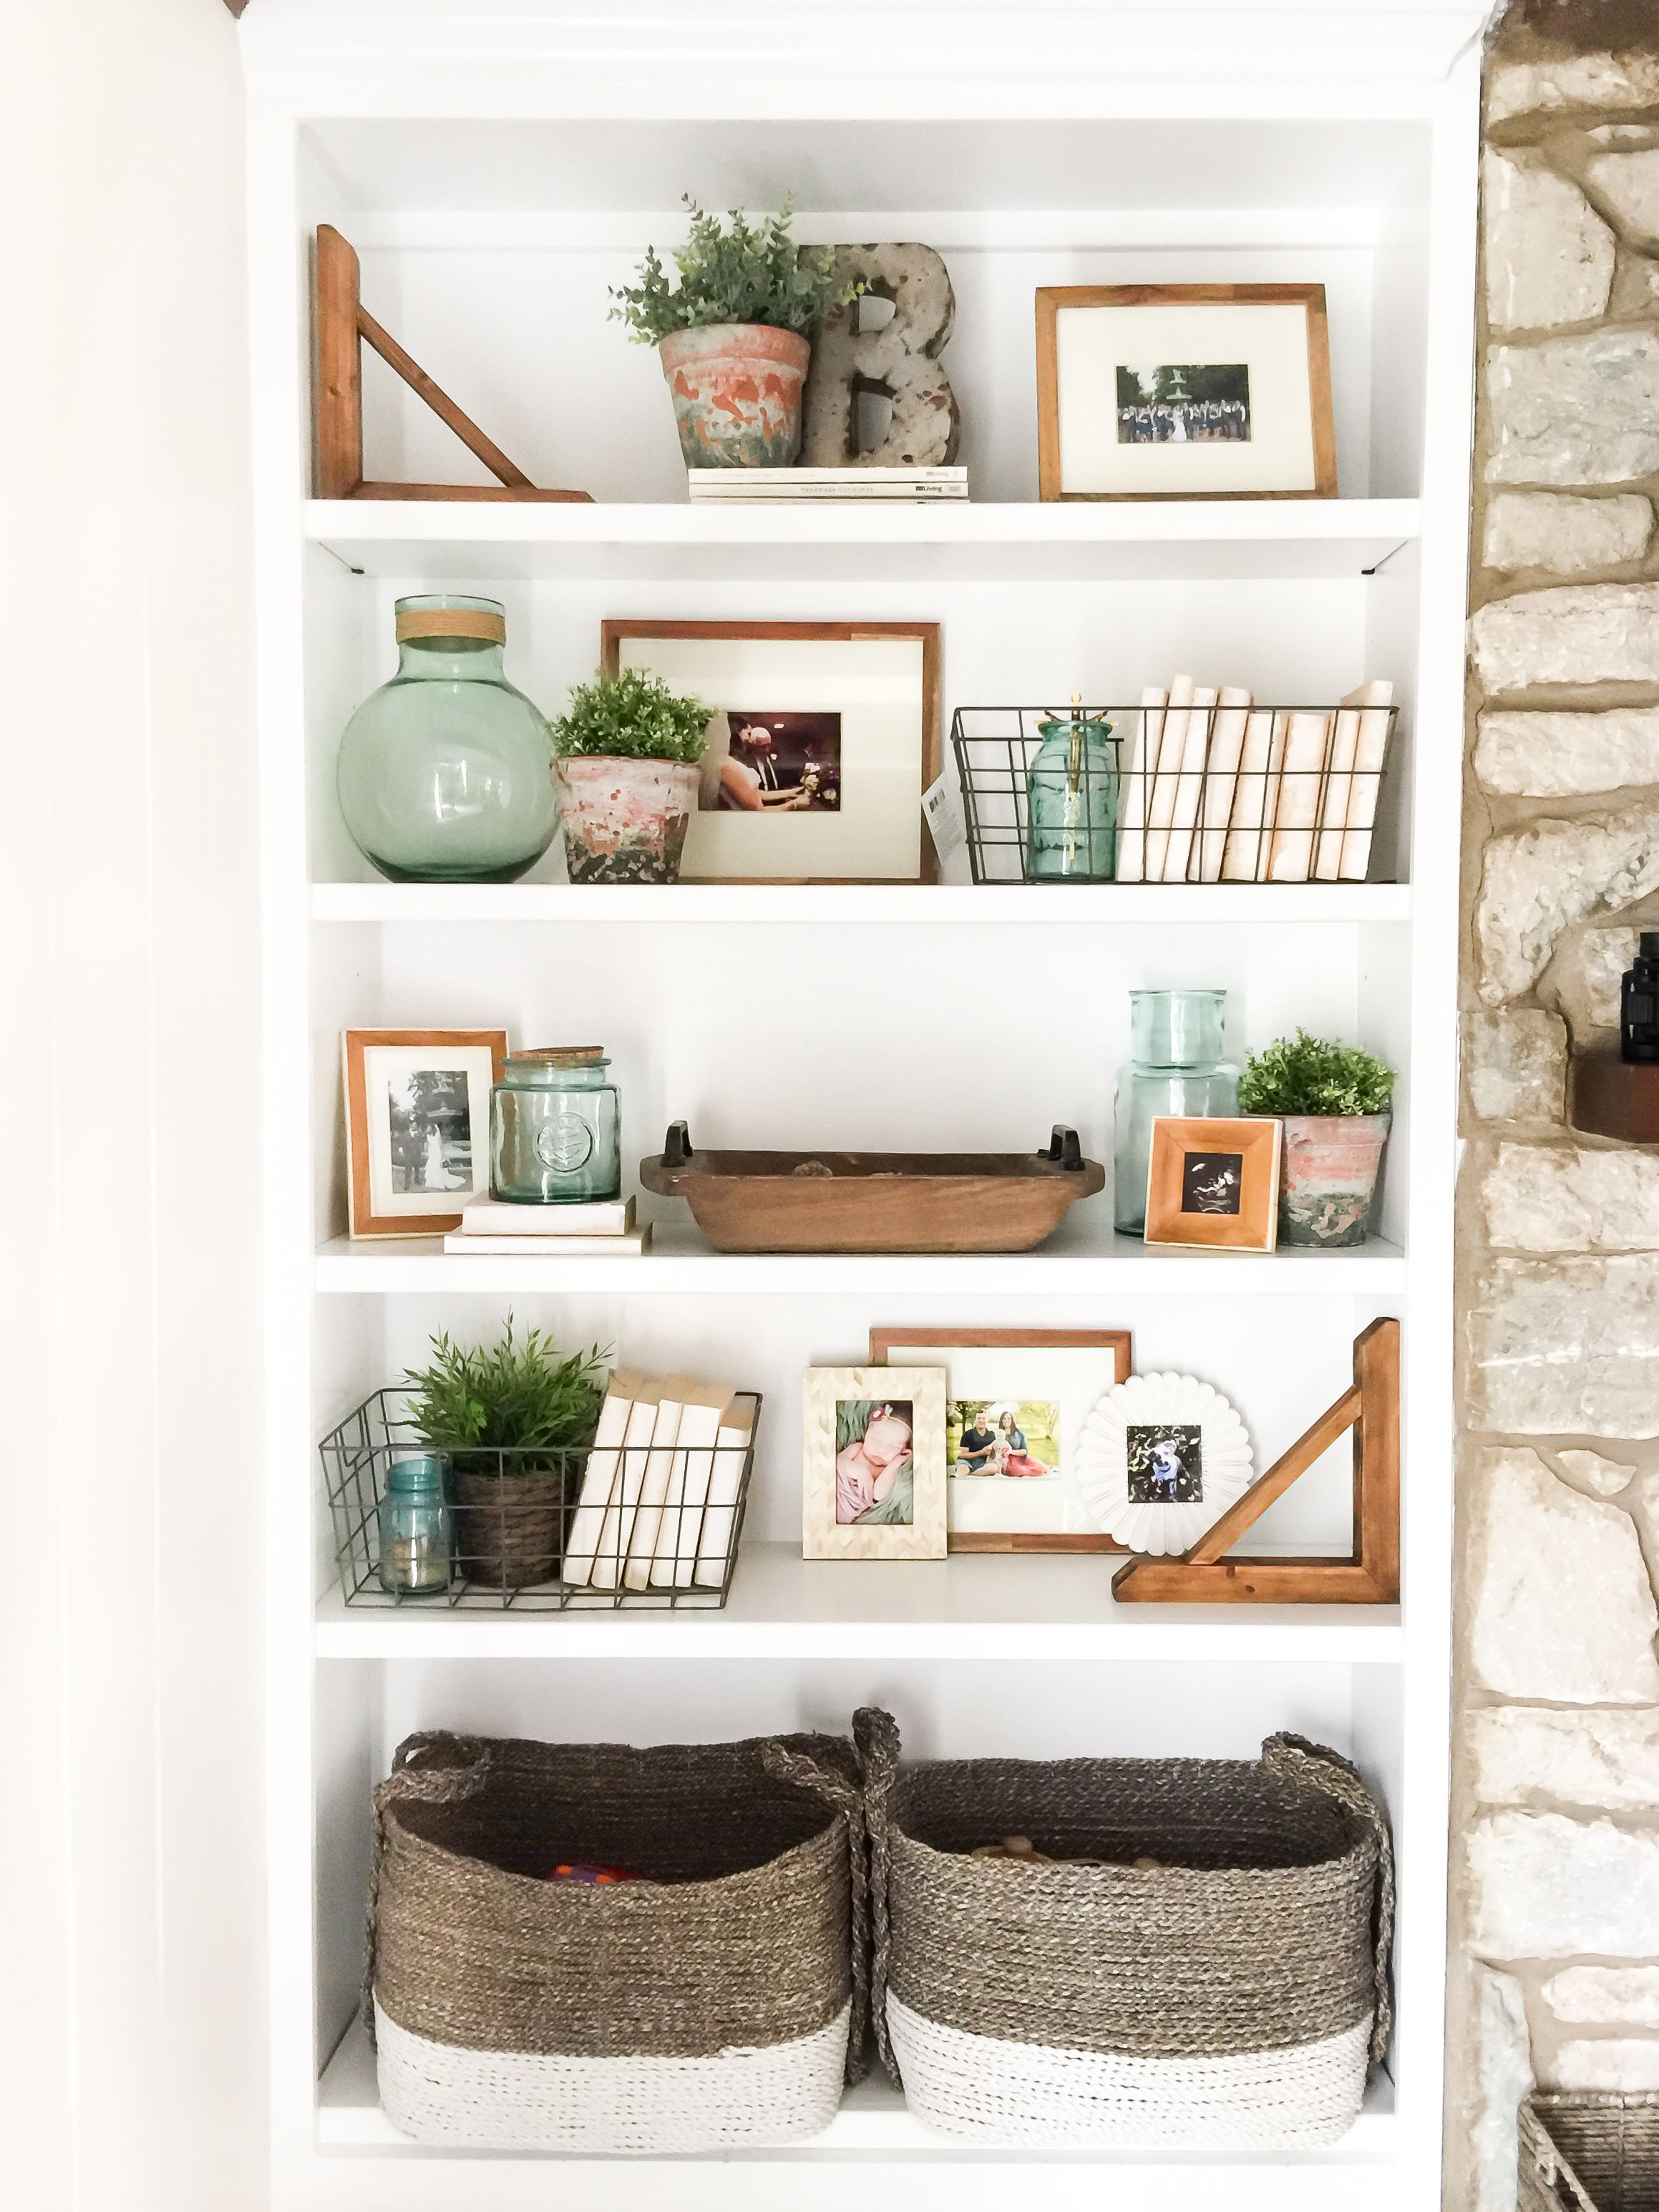 How To Style Open Shelves 3 Tips For An Uncluttered Look Living